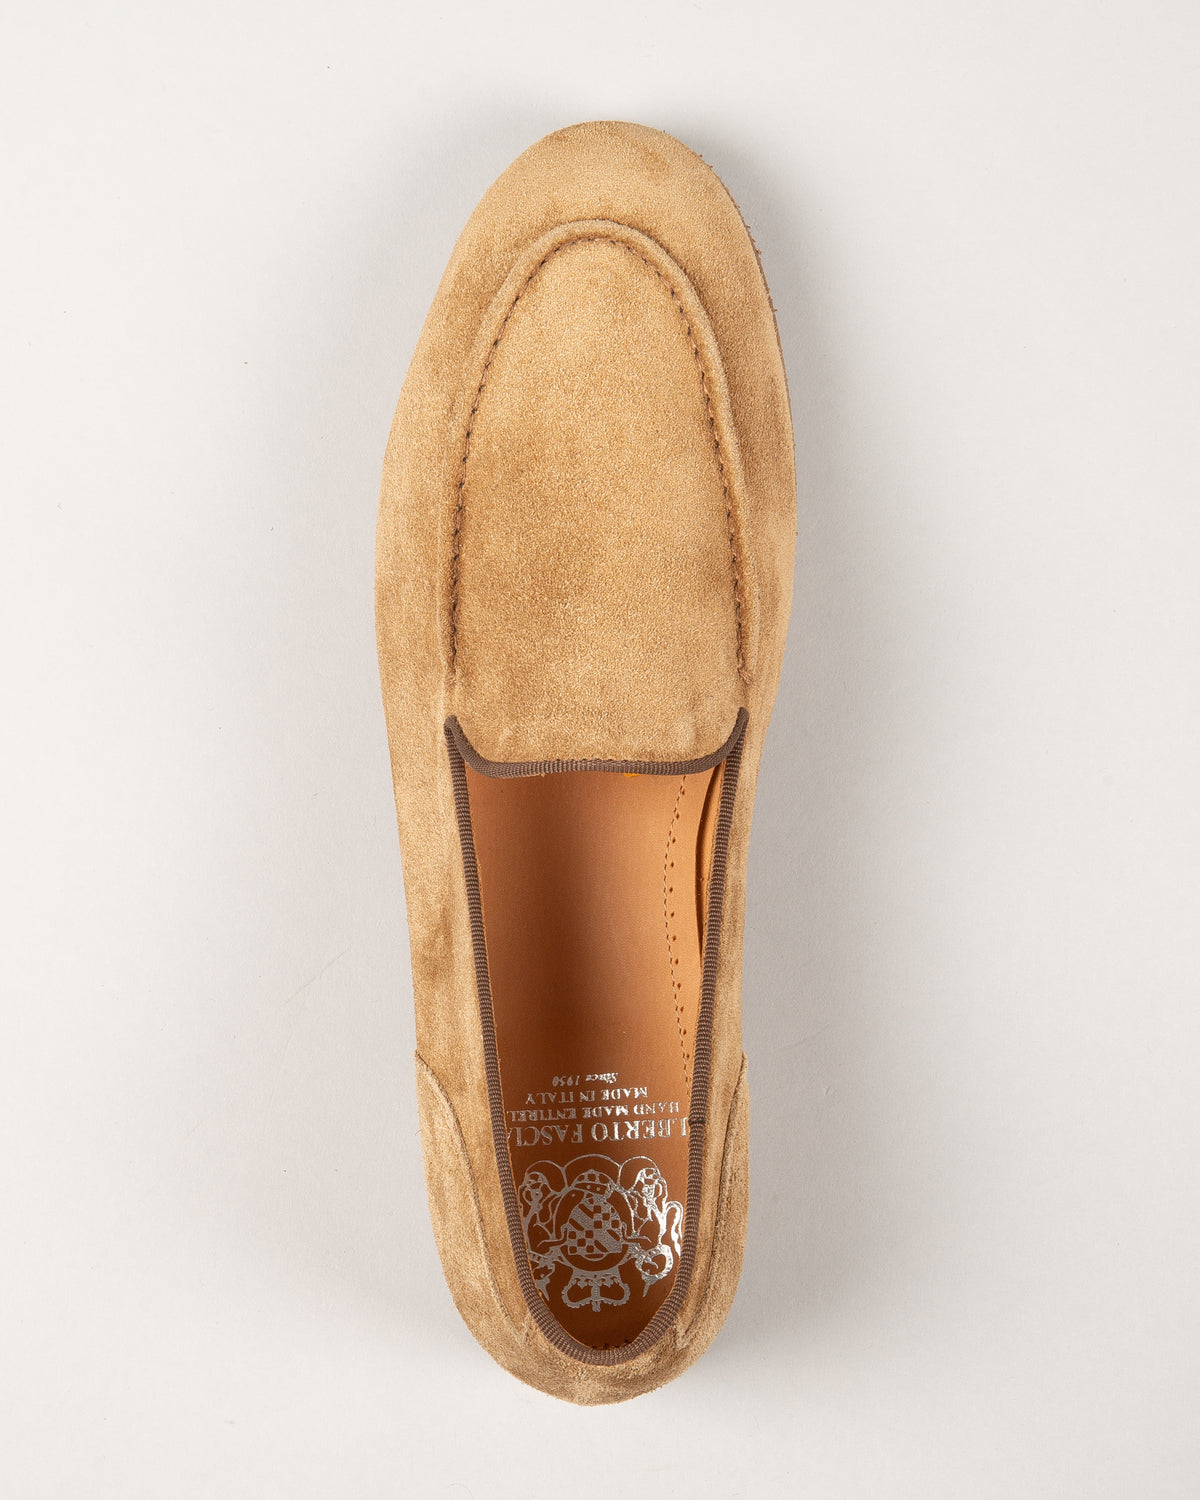 Zoe' Wildleder Loafer